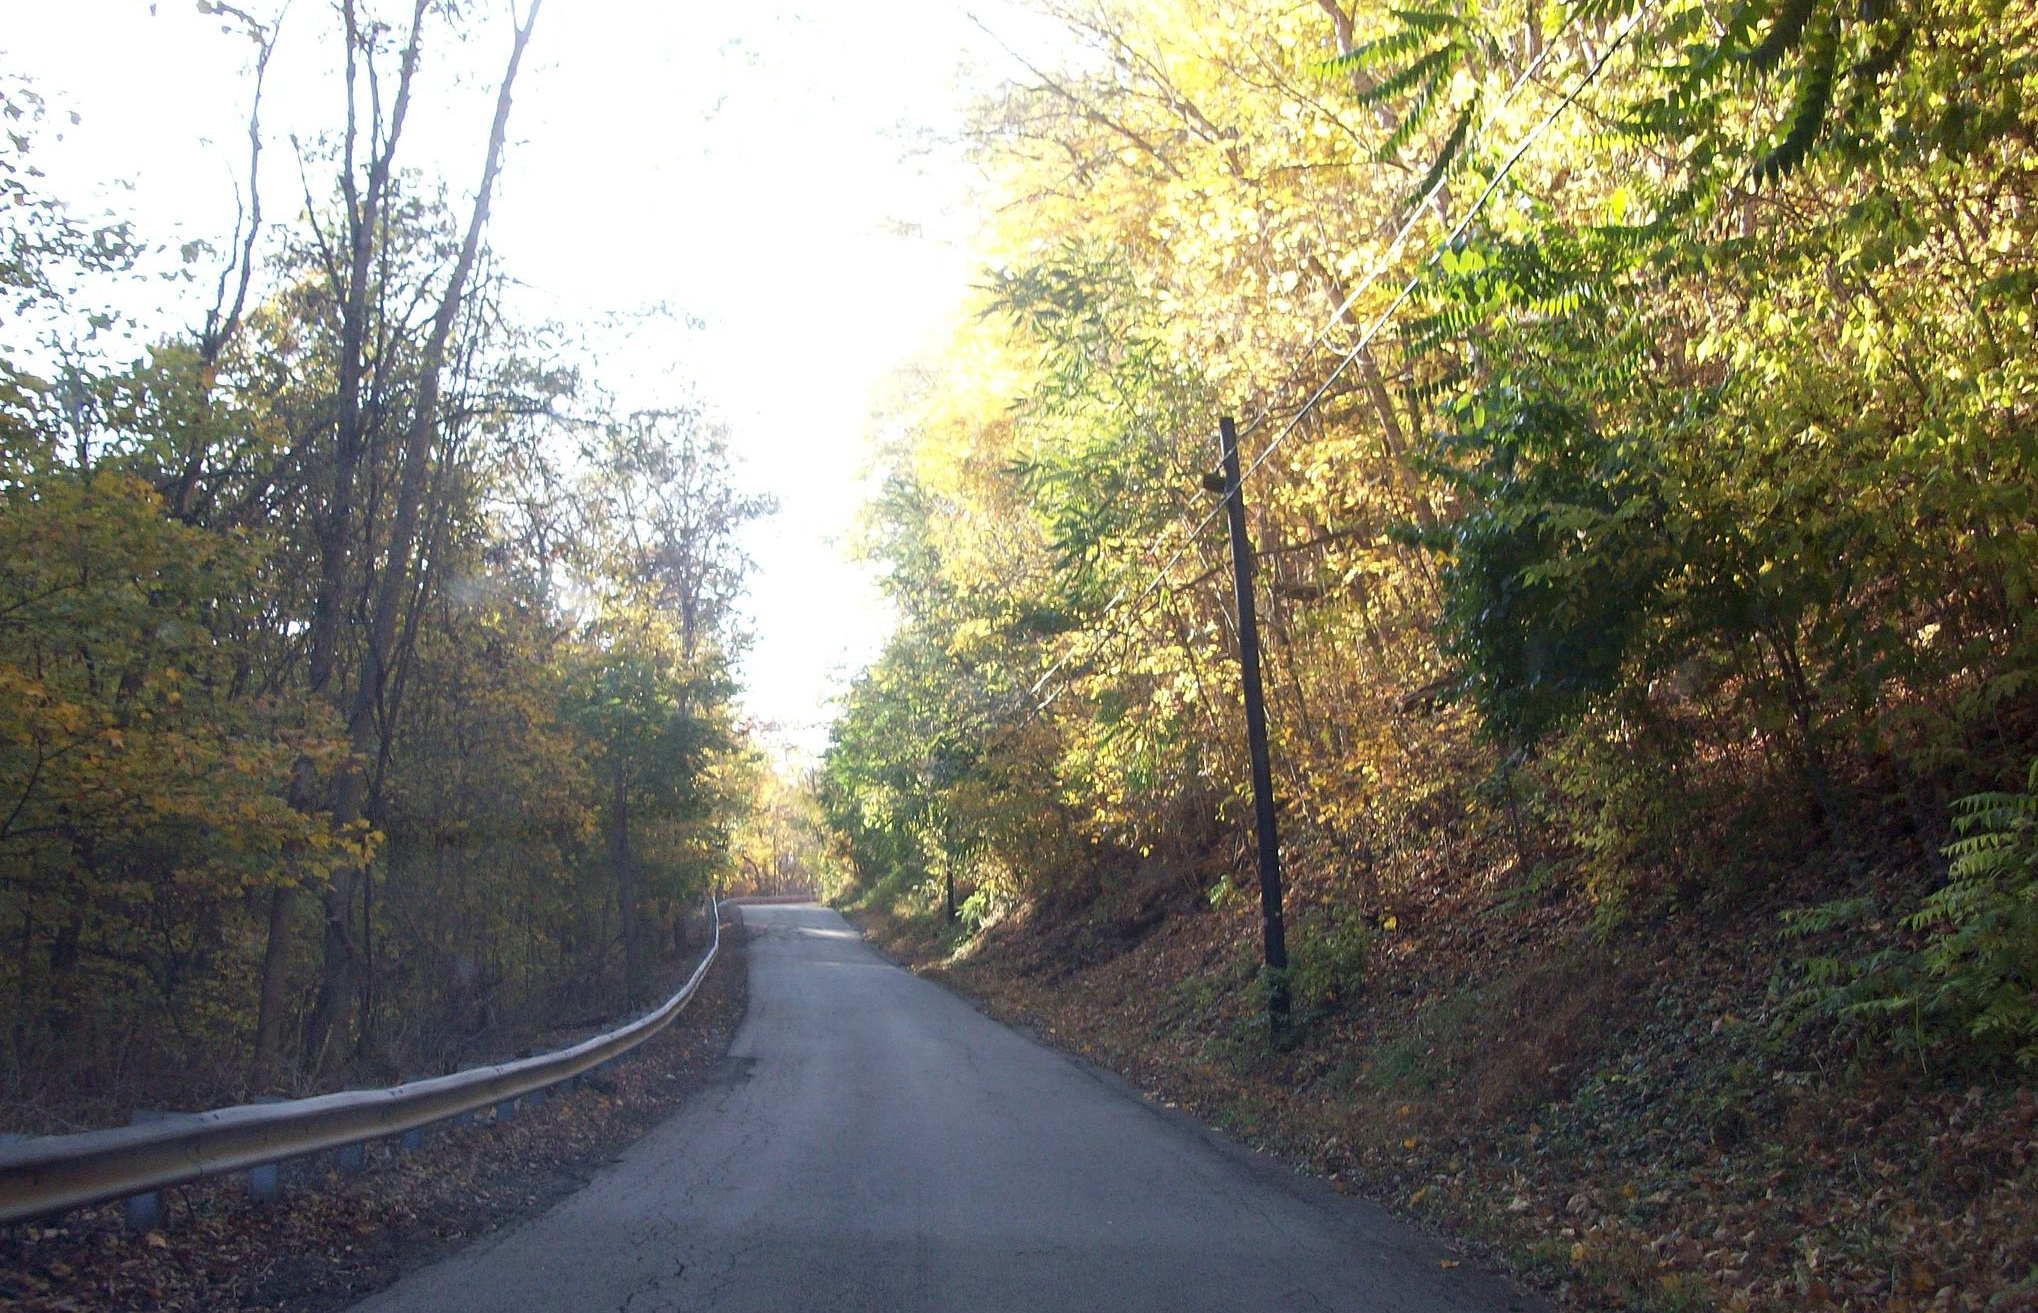 empty rural road surrounded by trees